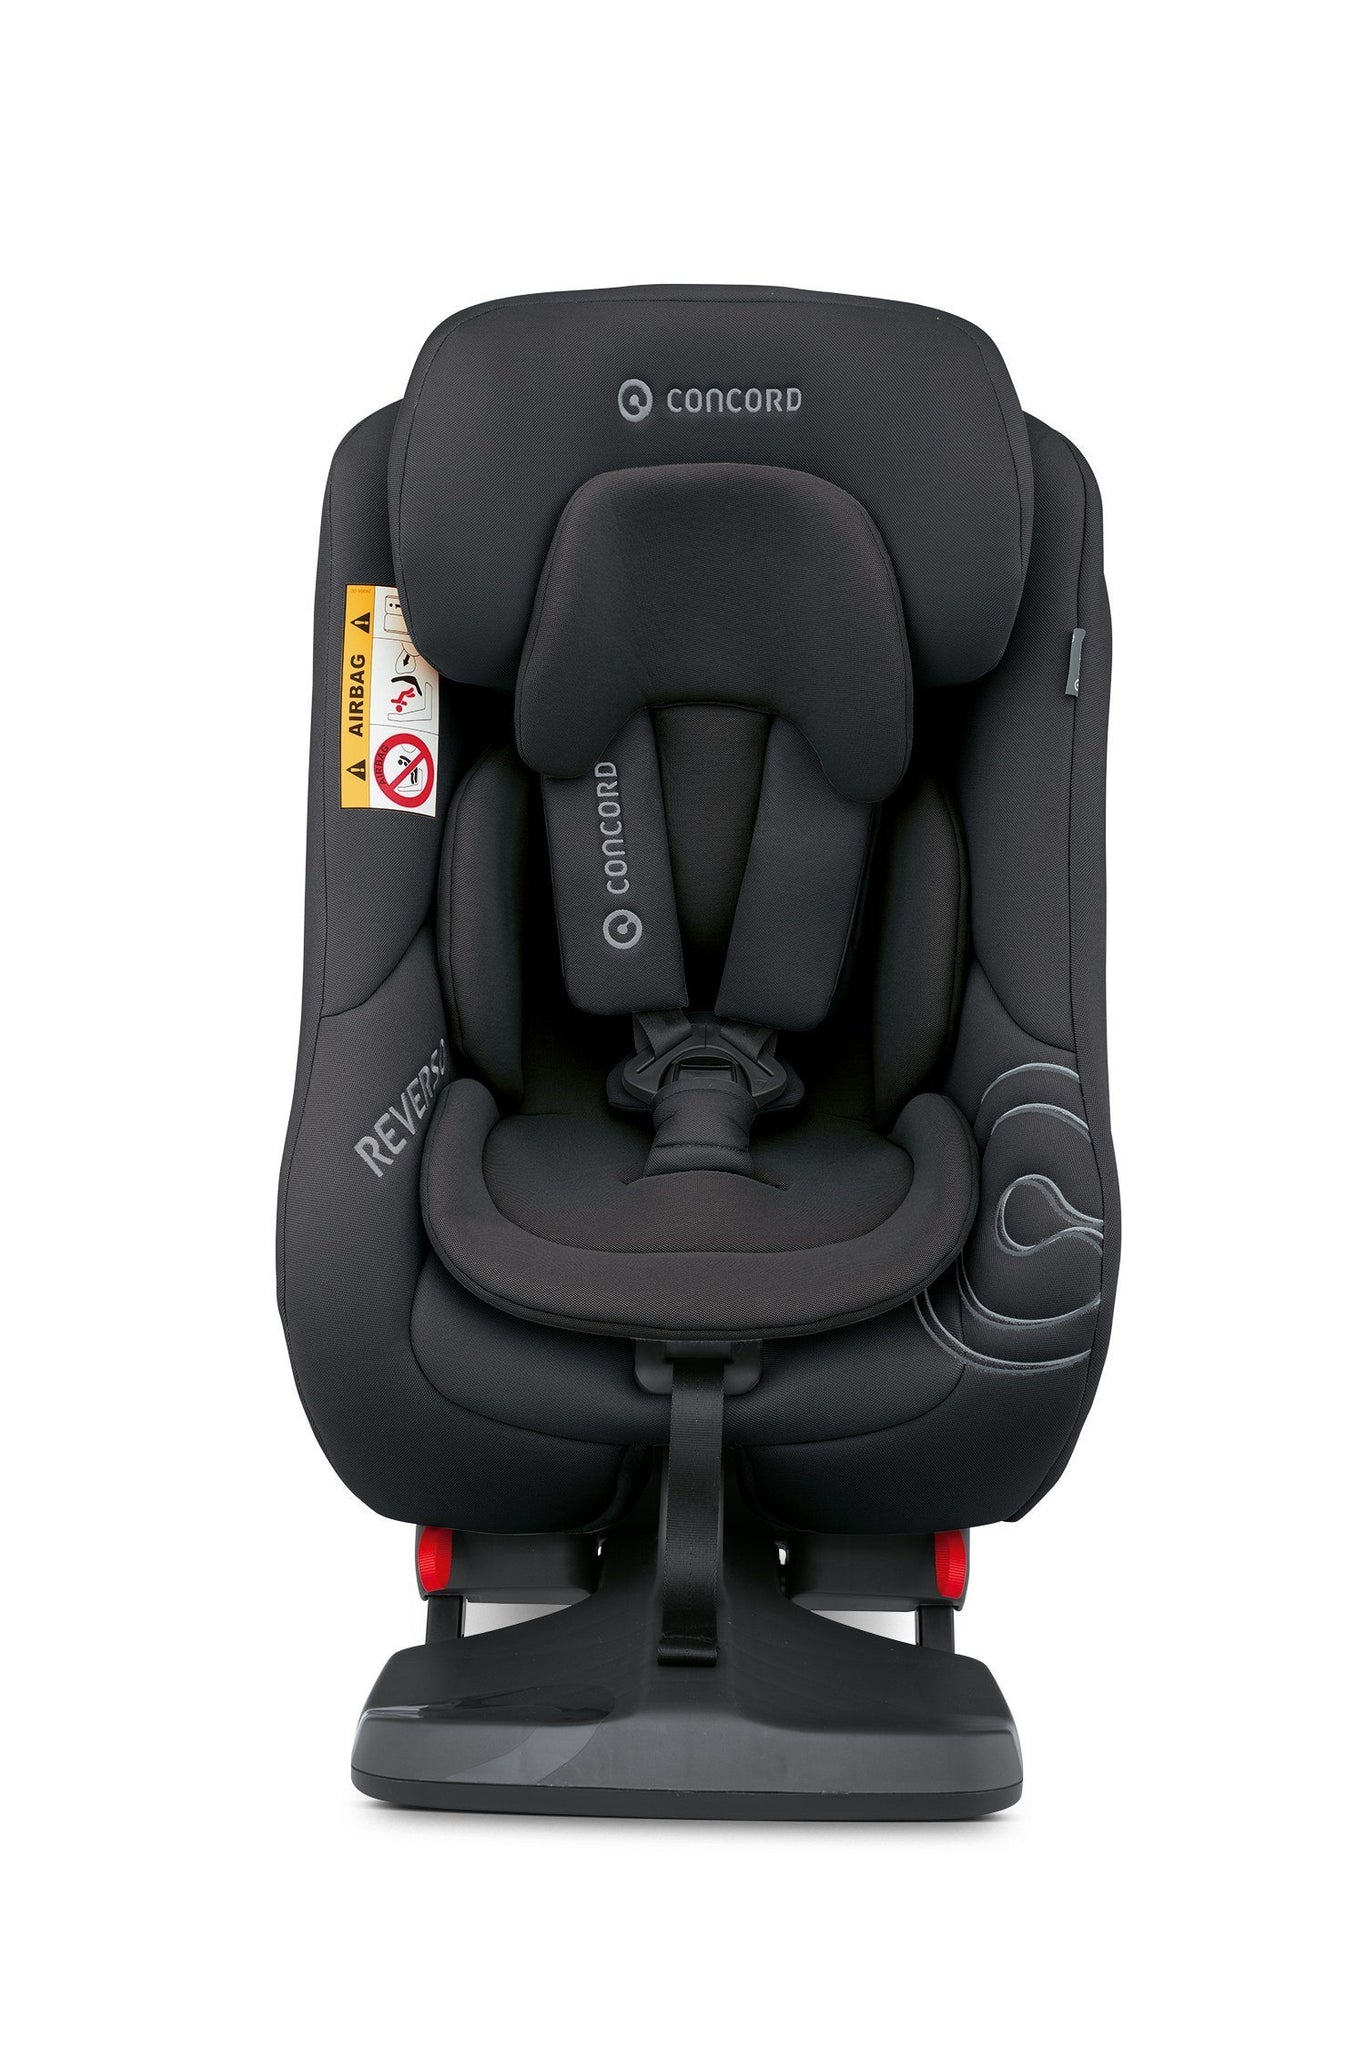 concord reverso plus 23kg isofix rear facing car seat. Black Bedroom Furniture Sets. Home Design Ideas